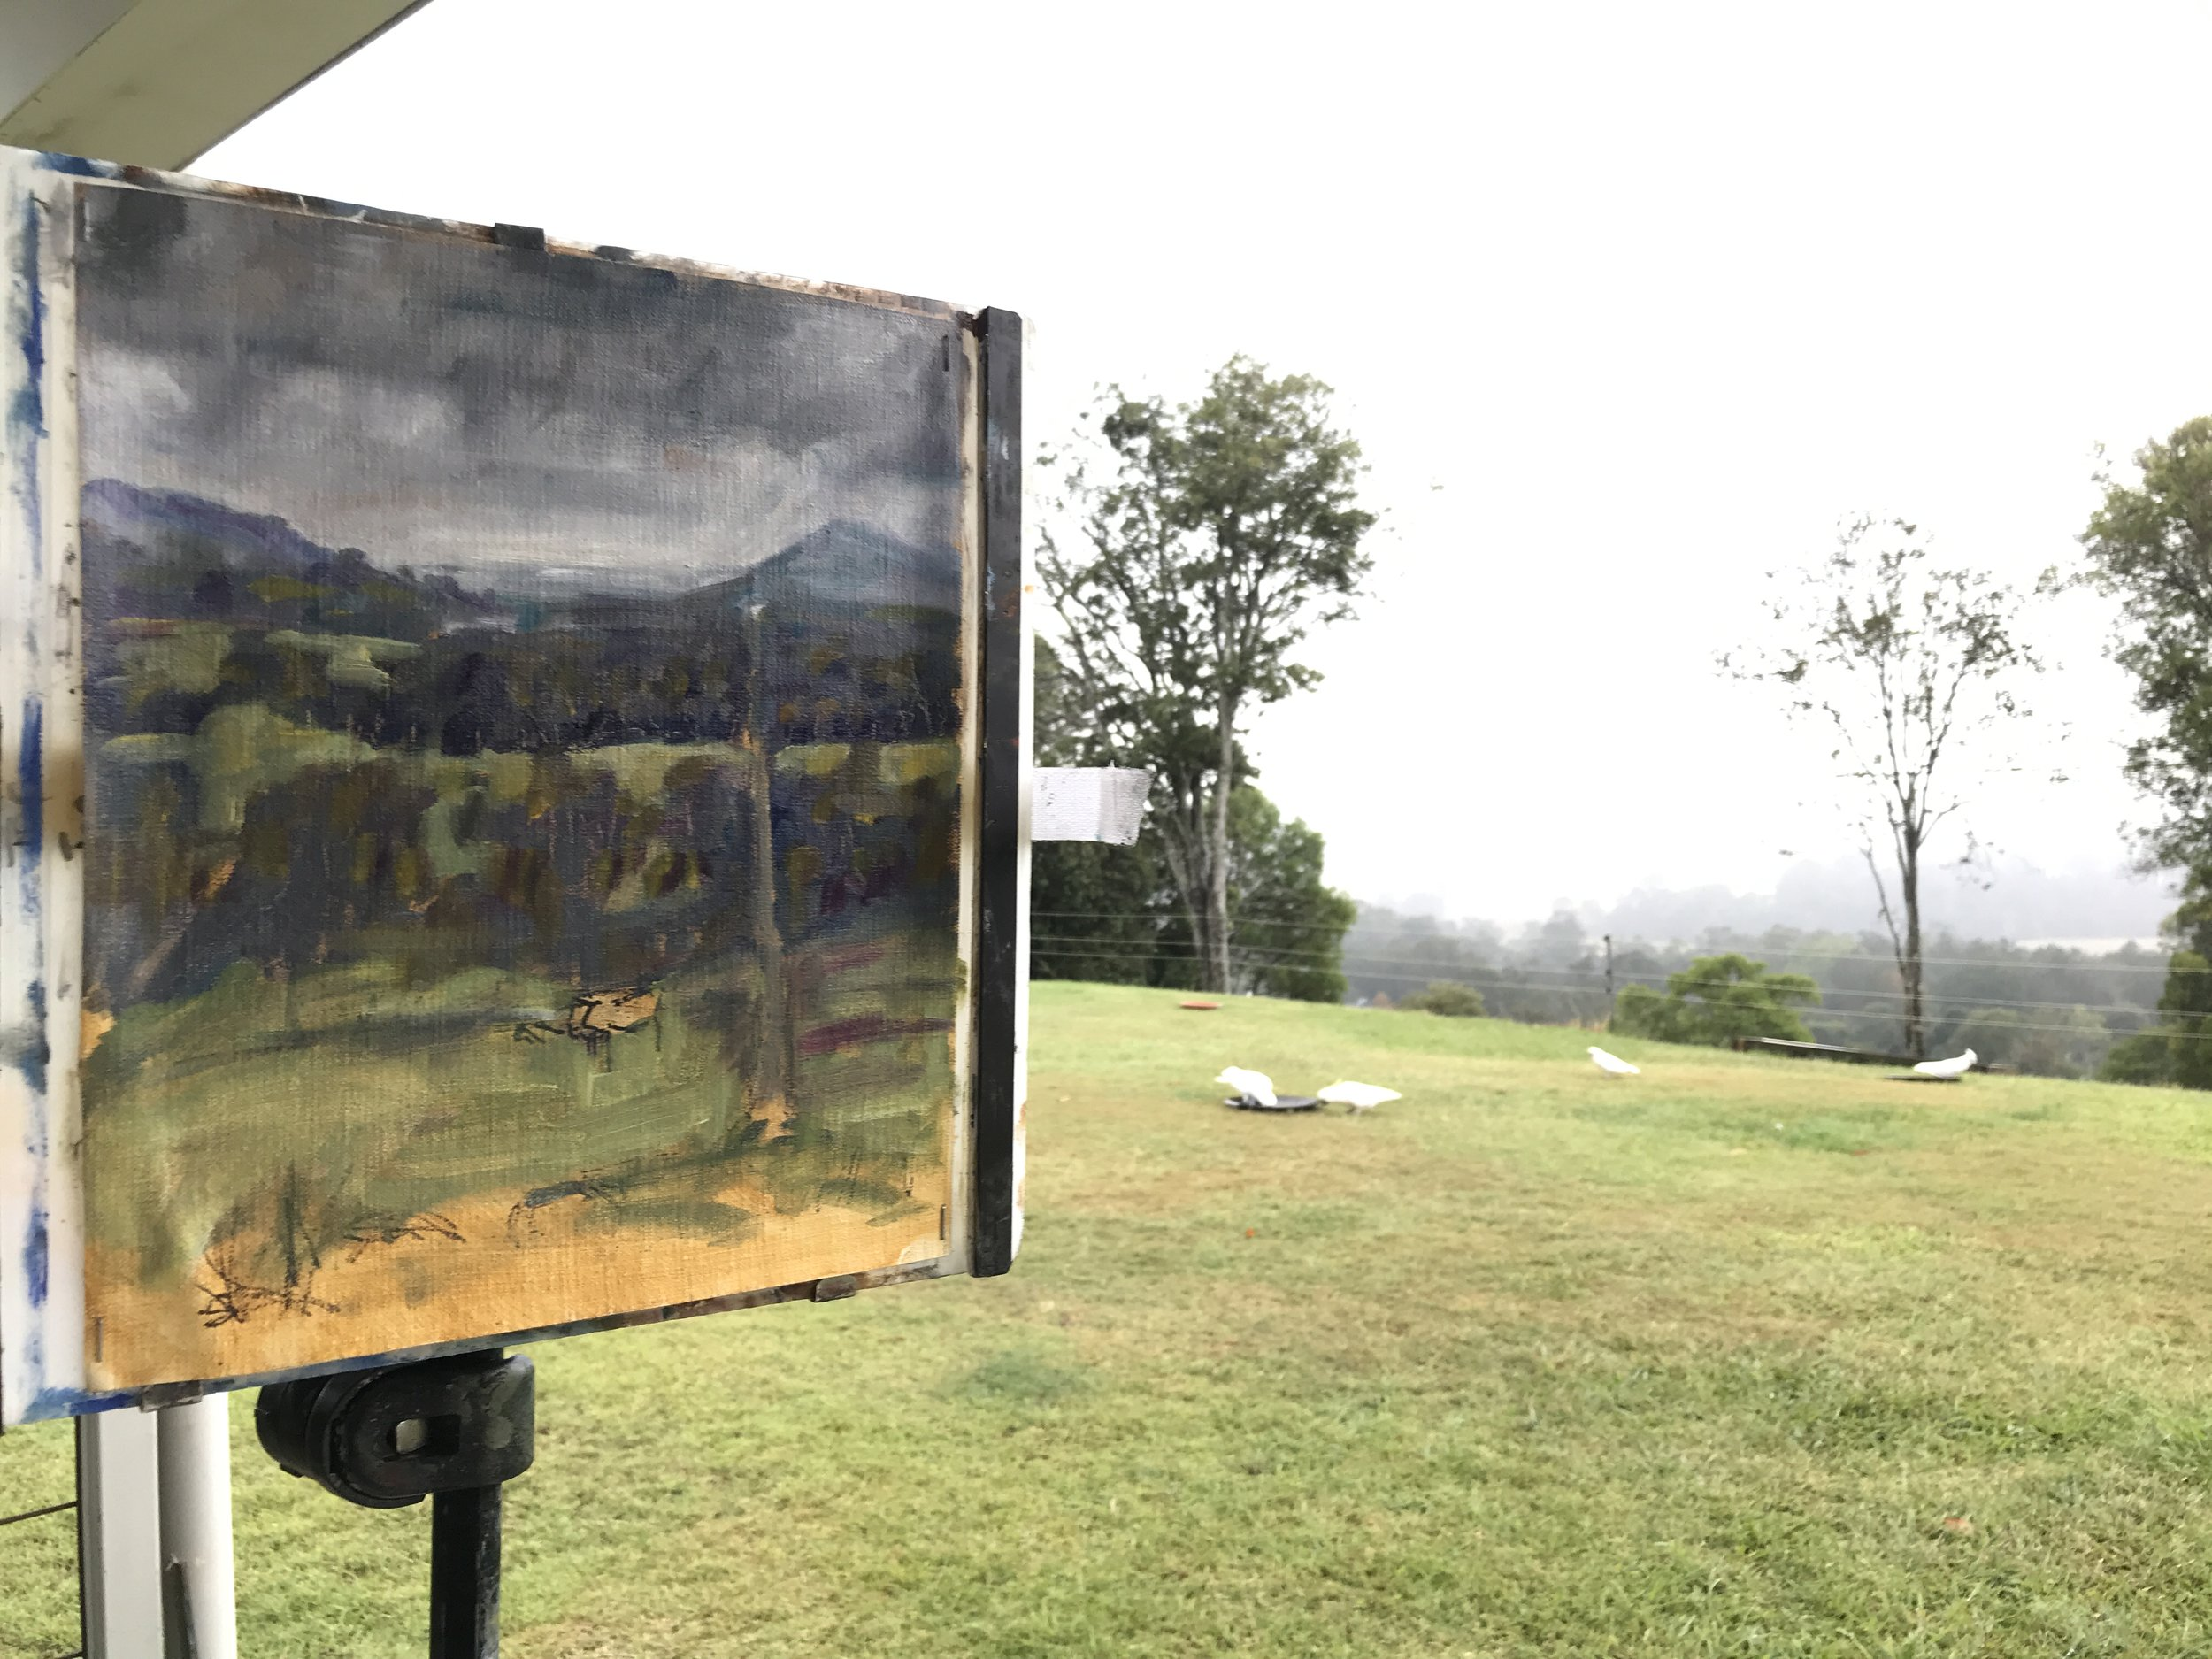 NG Rain stopped play. The start of a cloudy day painting from the back garden.